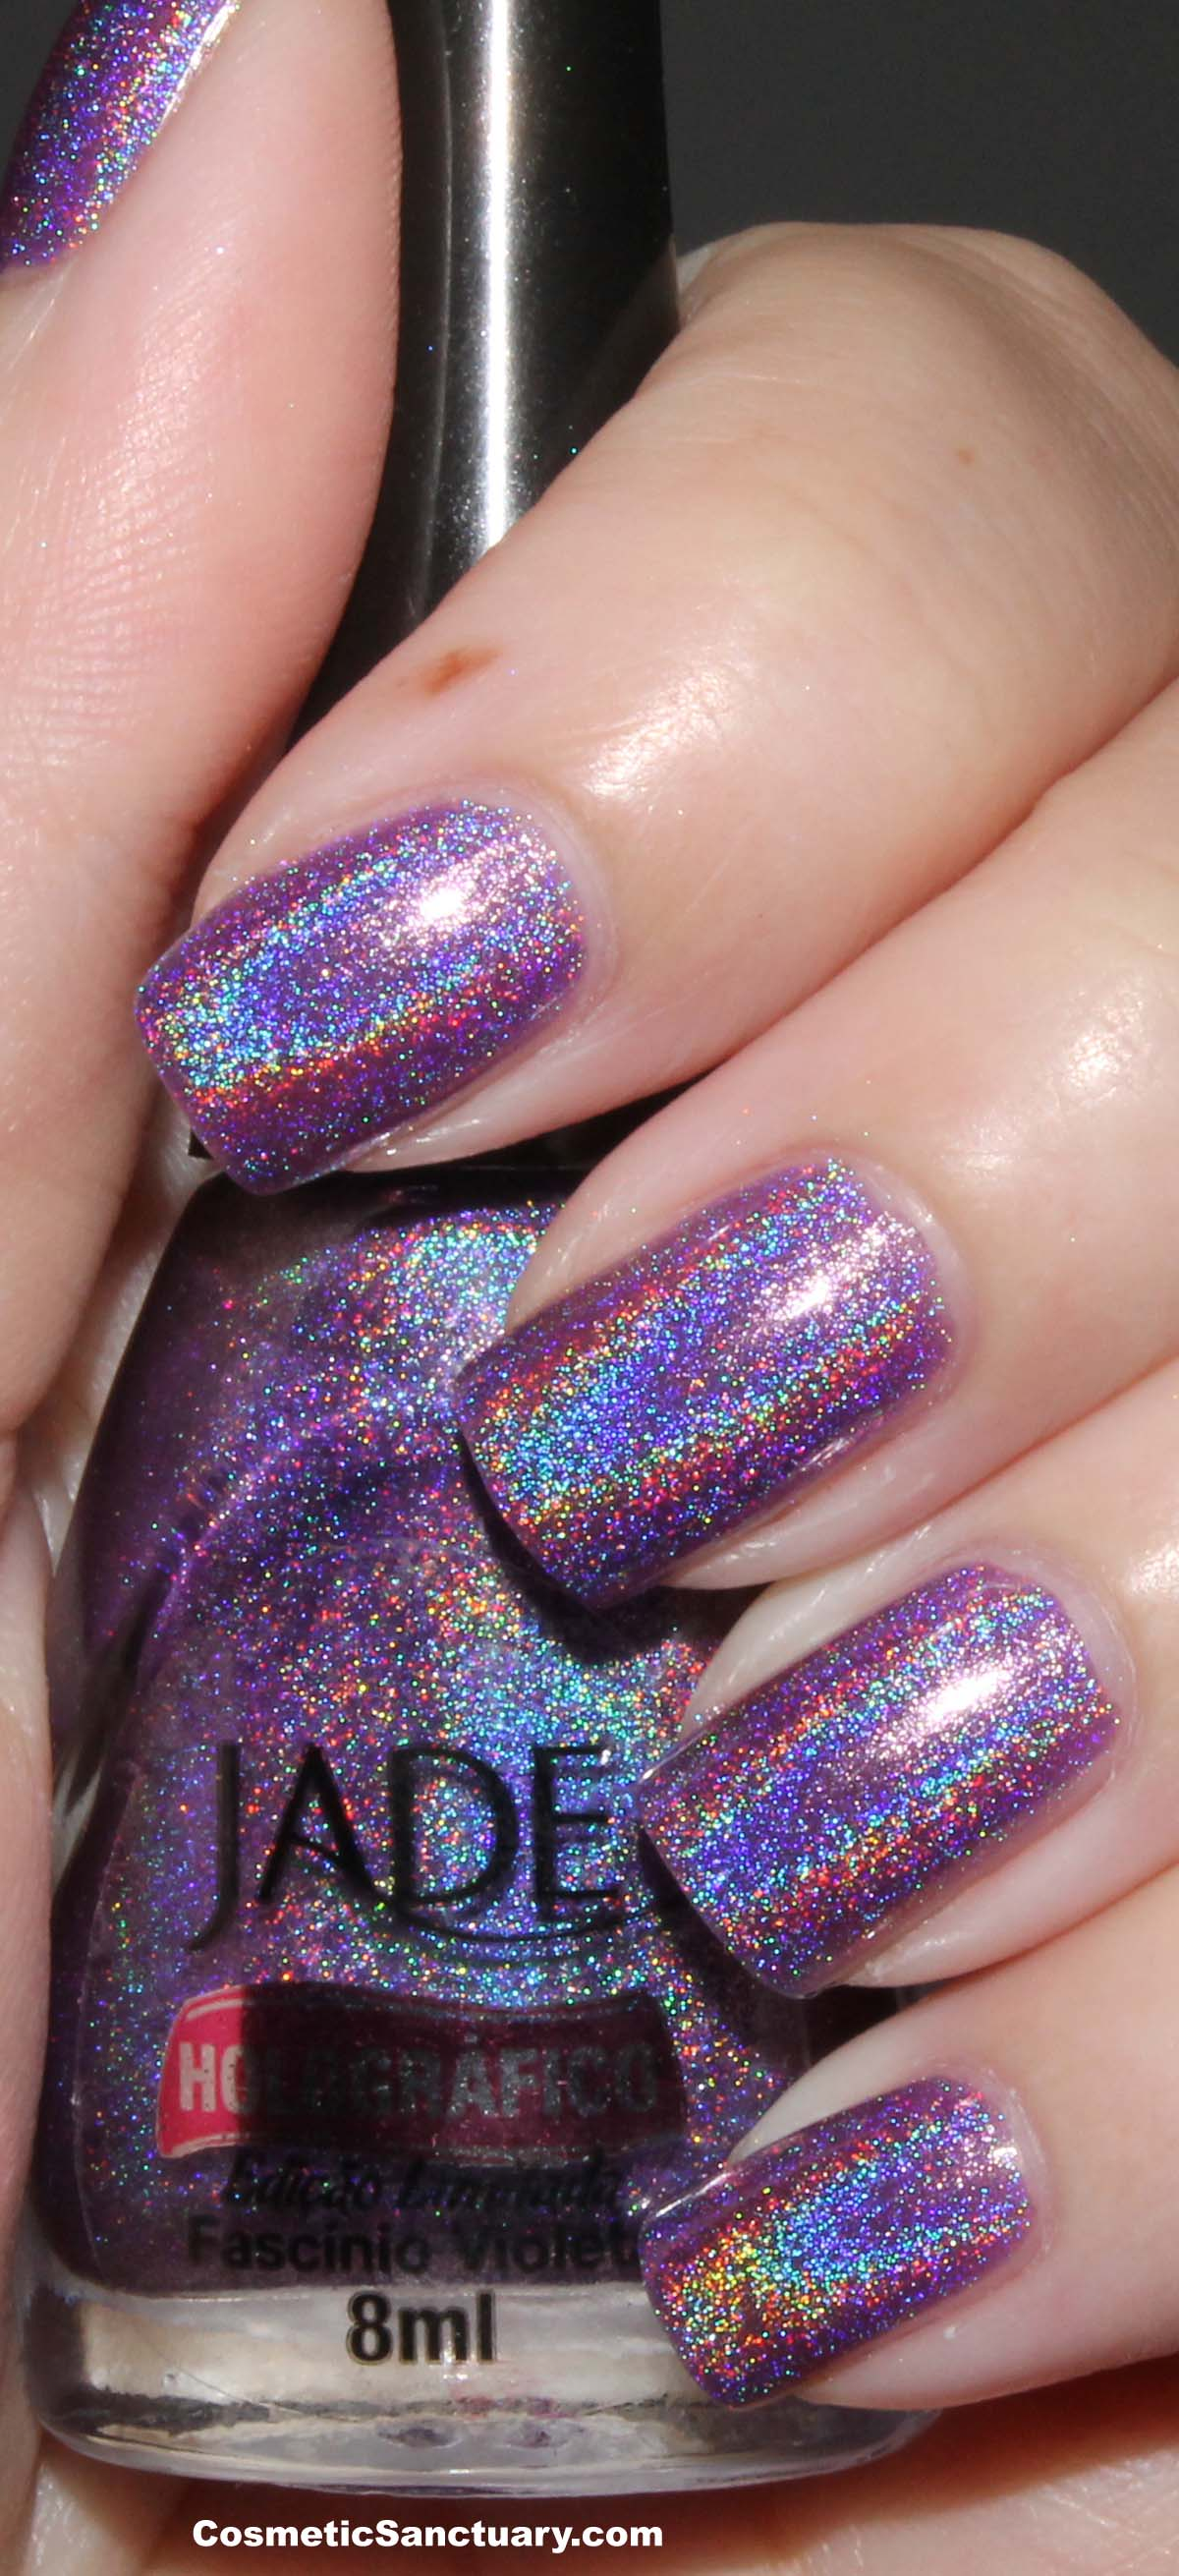 Jade Holographic Spam! Picture Heavy!   Cosmetic Sanctuary